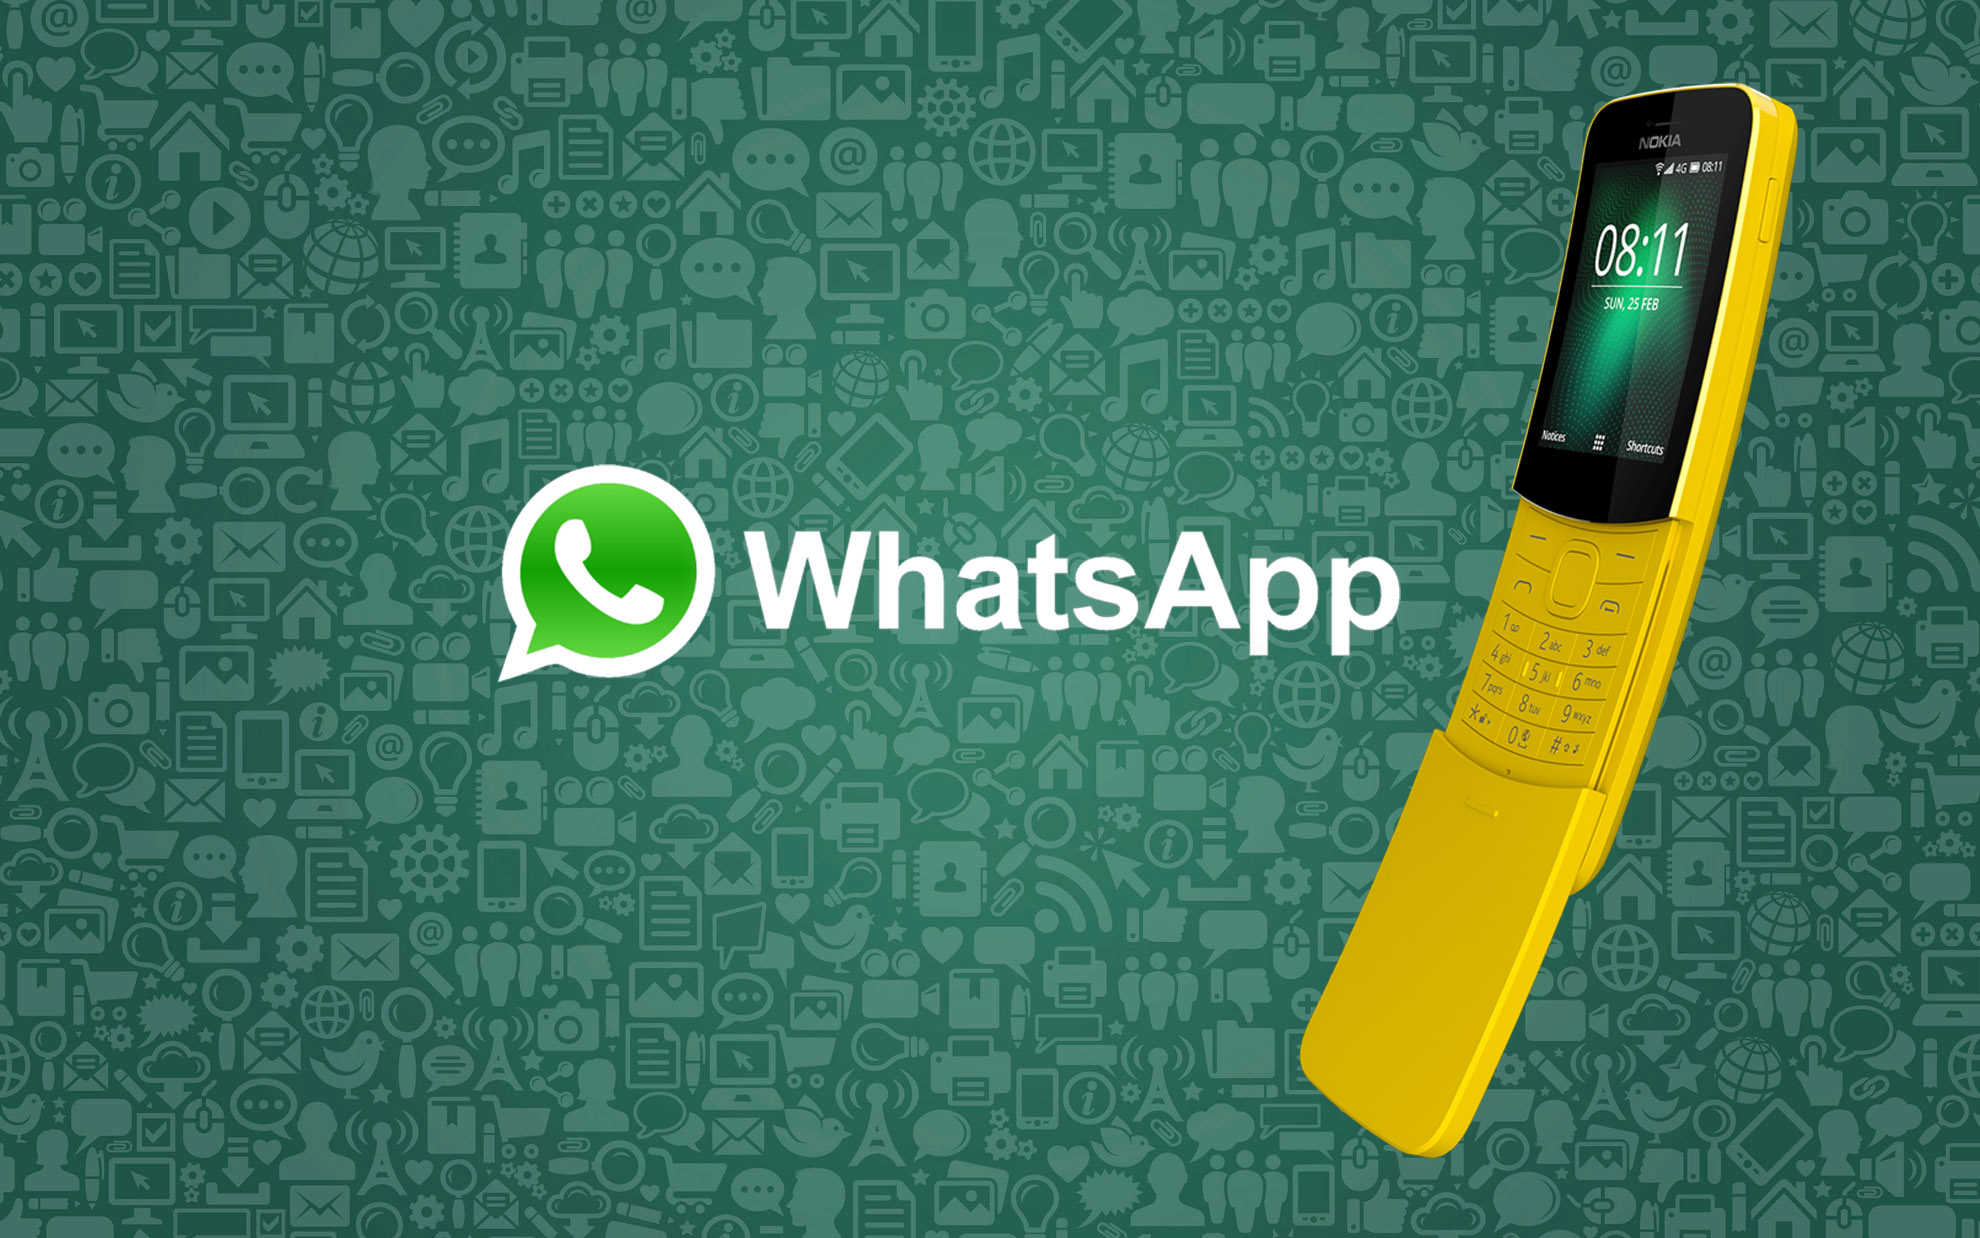 Whatsapp su Nokia 8110